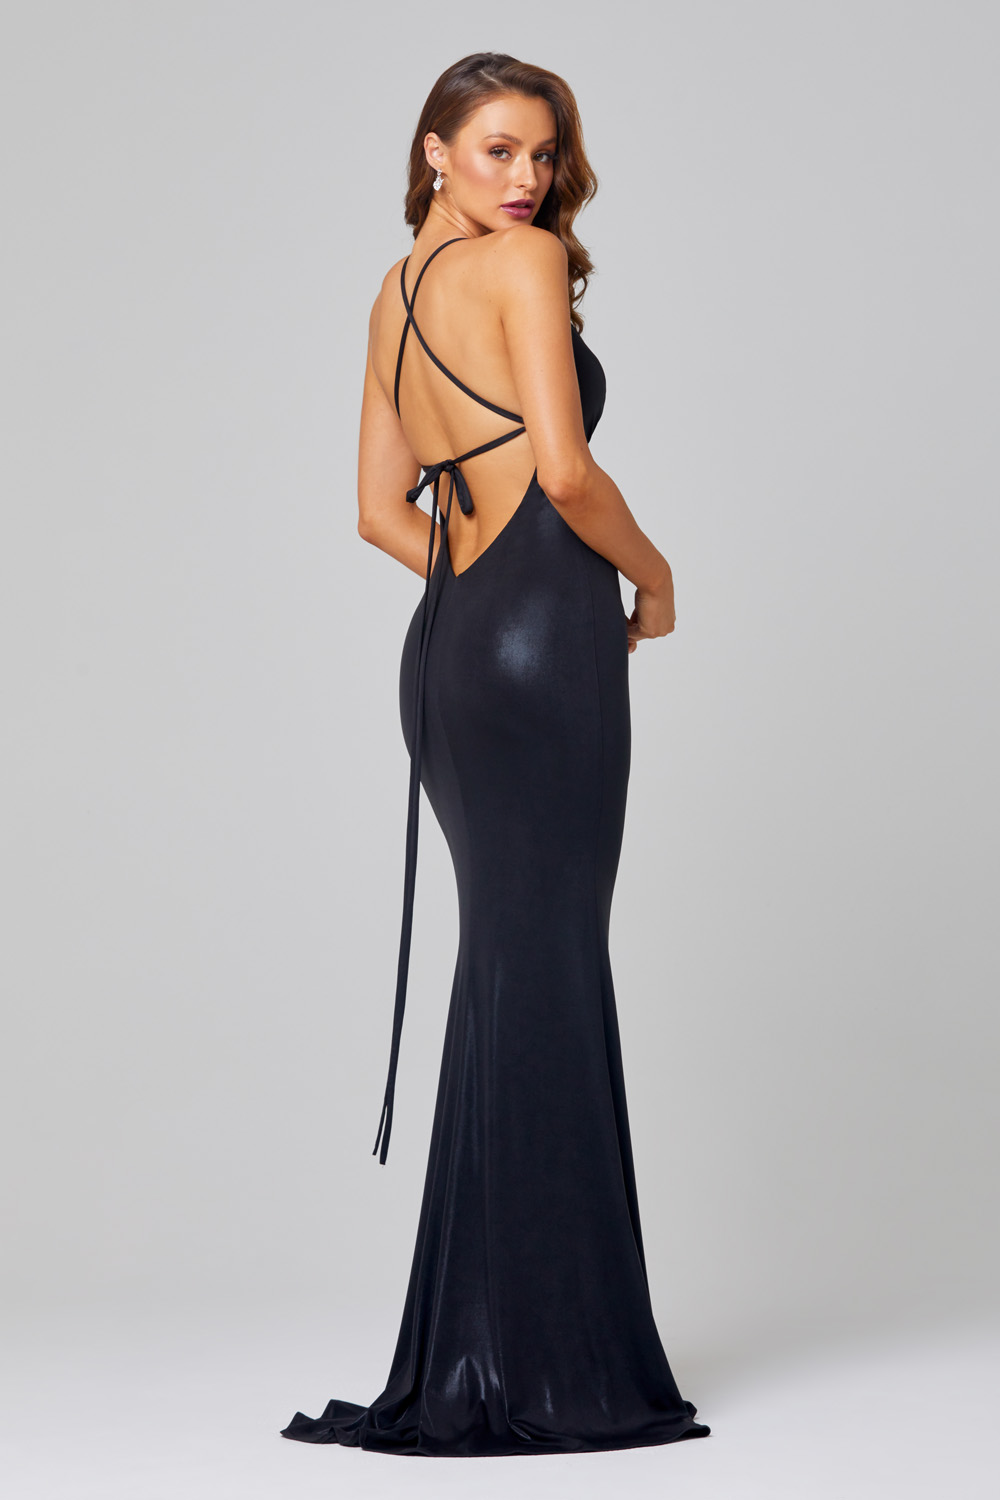 Kian Lace up Back Formal Dress - PO887 Back